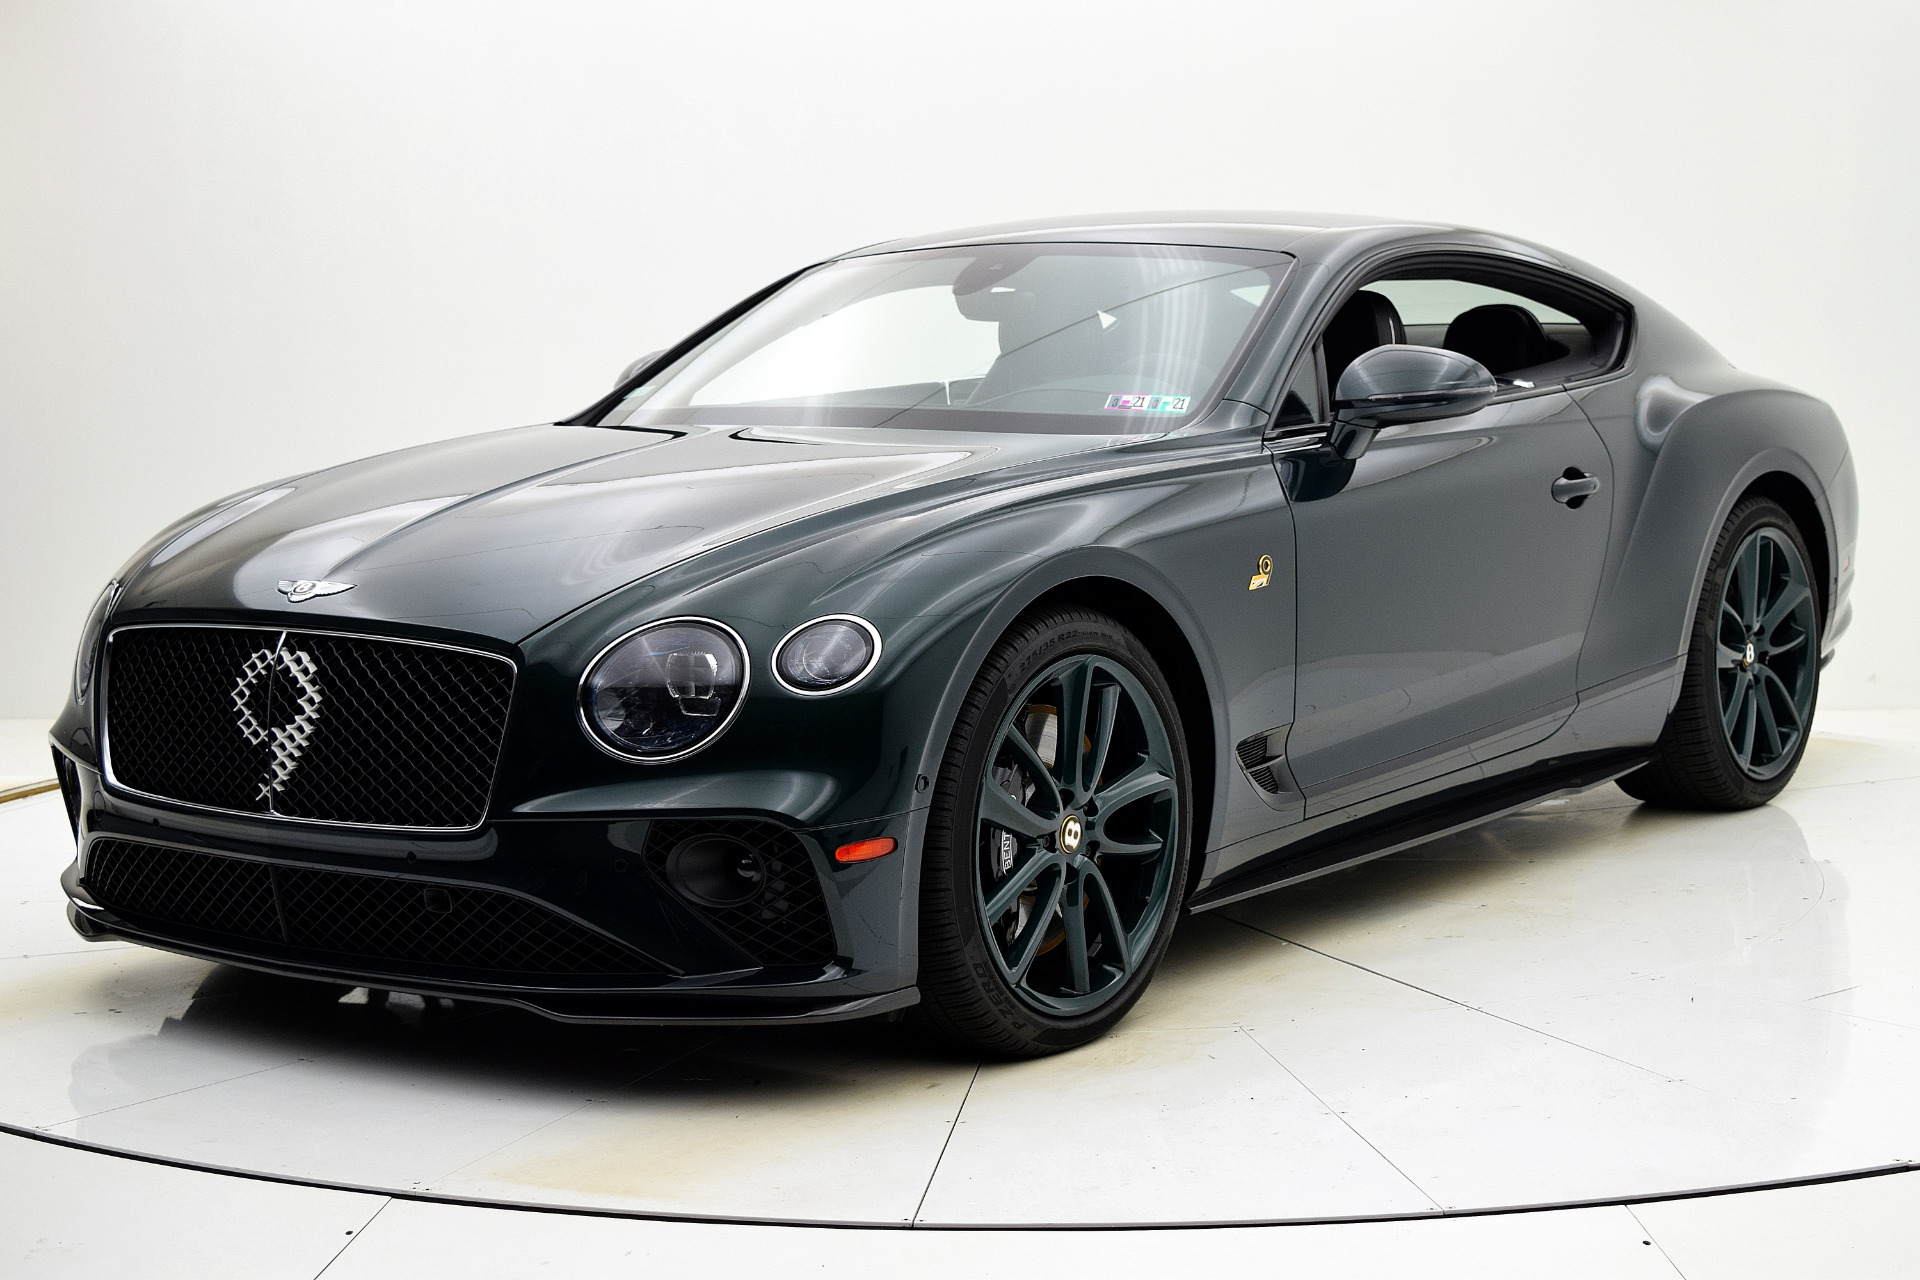 Used 2020 Bentley Continental GT Number 9 Edition for sale Sold at Bentley Palmyra N.J. in Palmyra NJ 08065 2